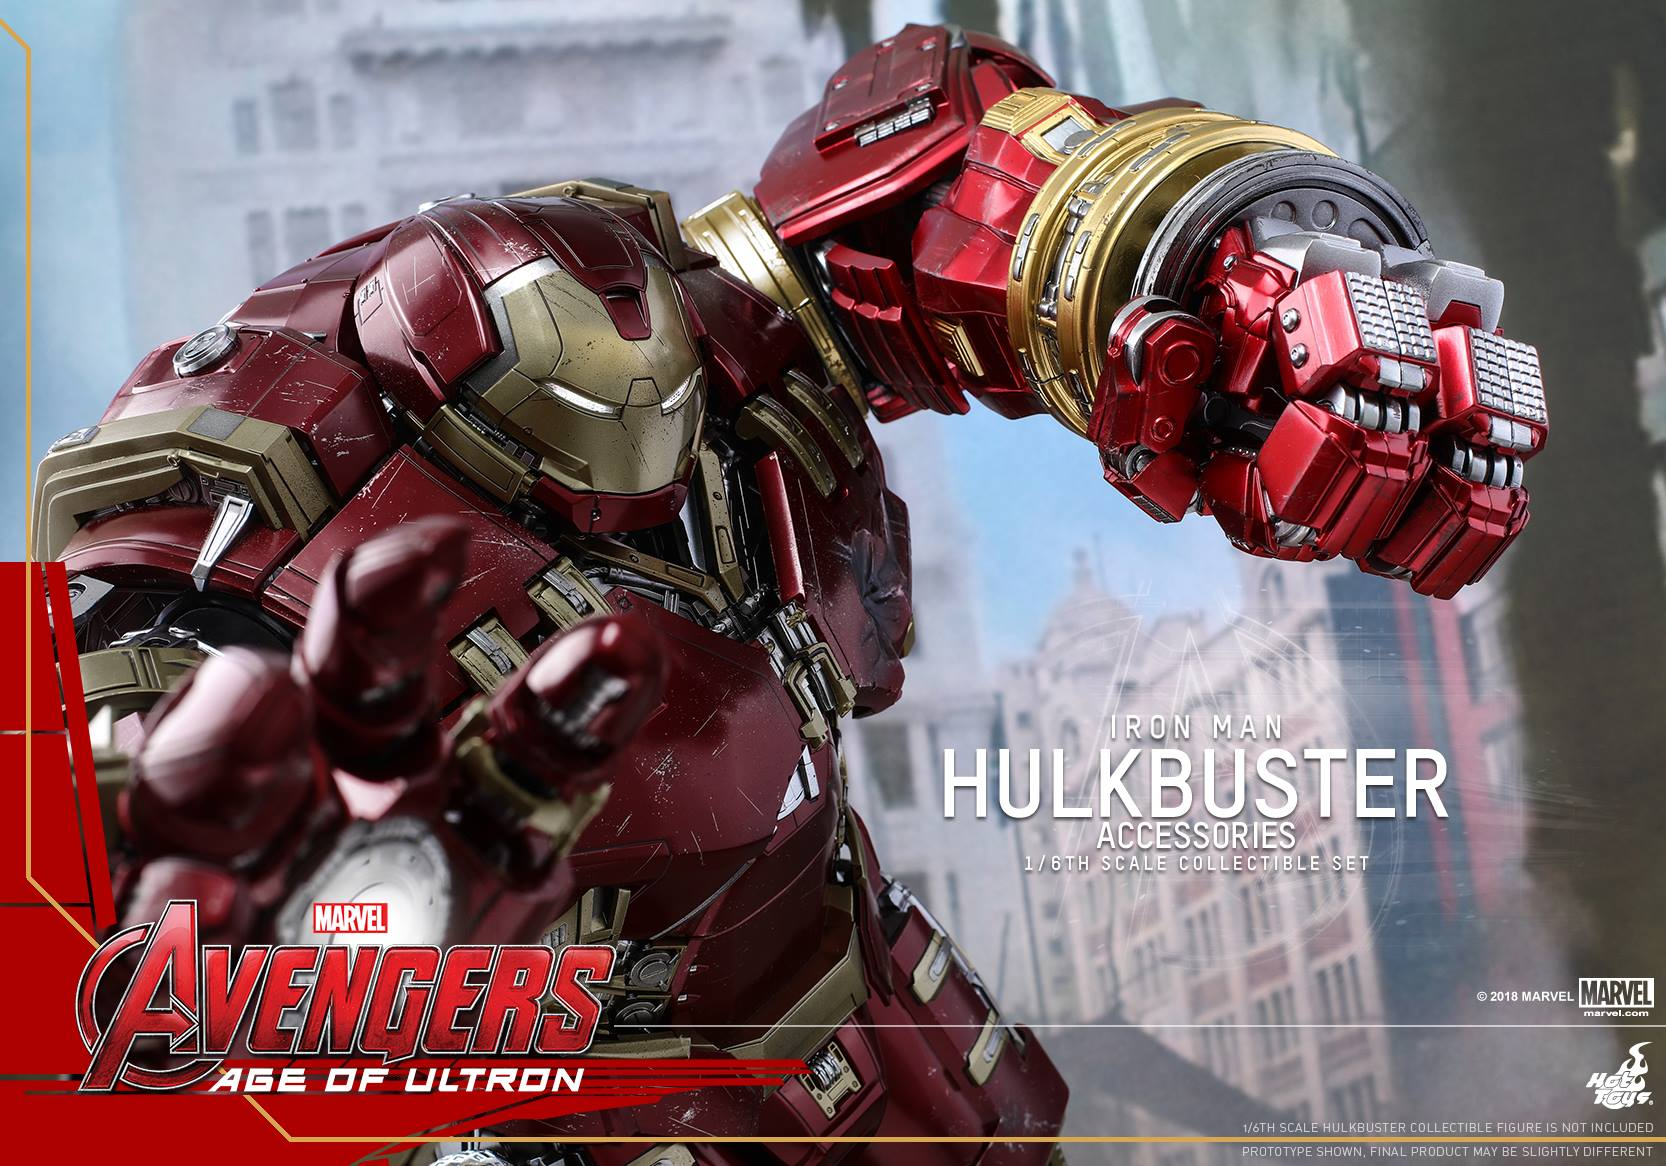 Hot Toys: ACS006 Avengers: Age of Ultron Hulkbuster Accessories 1/6 Scale  Collectible Set